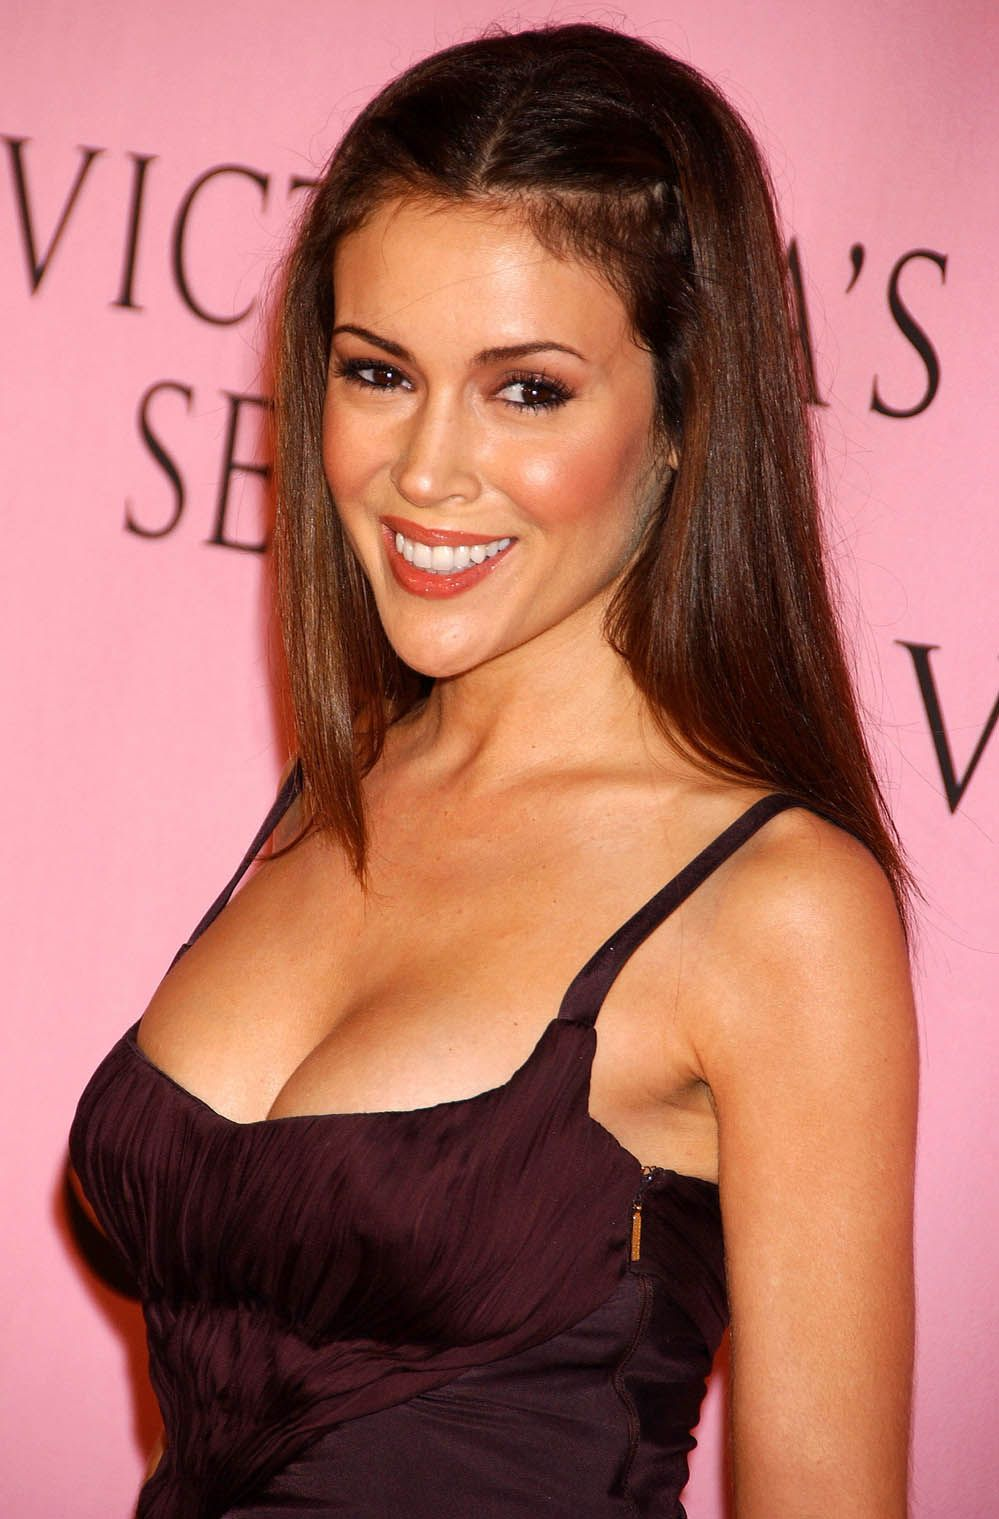 butt Sideboobs Alyssa Milano naked photo 2017